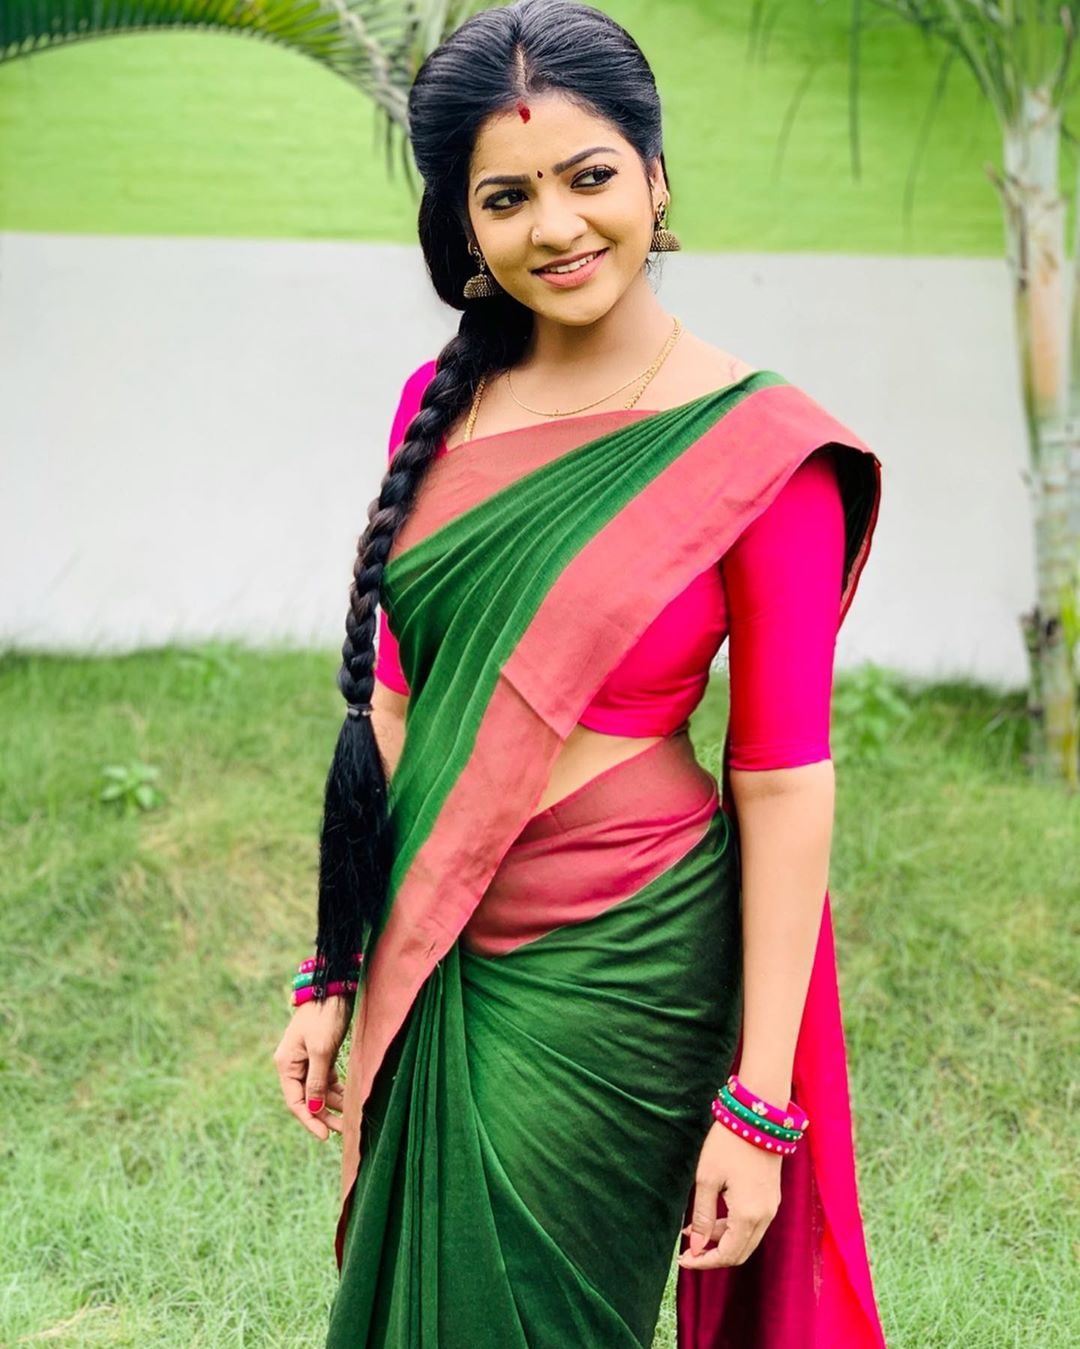 VJ Chitra Wiki, Biography, Age, Family, Images, Movies, Serials